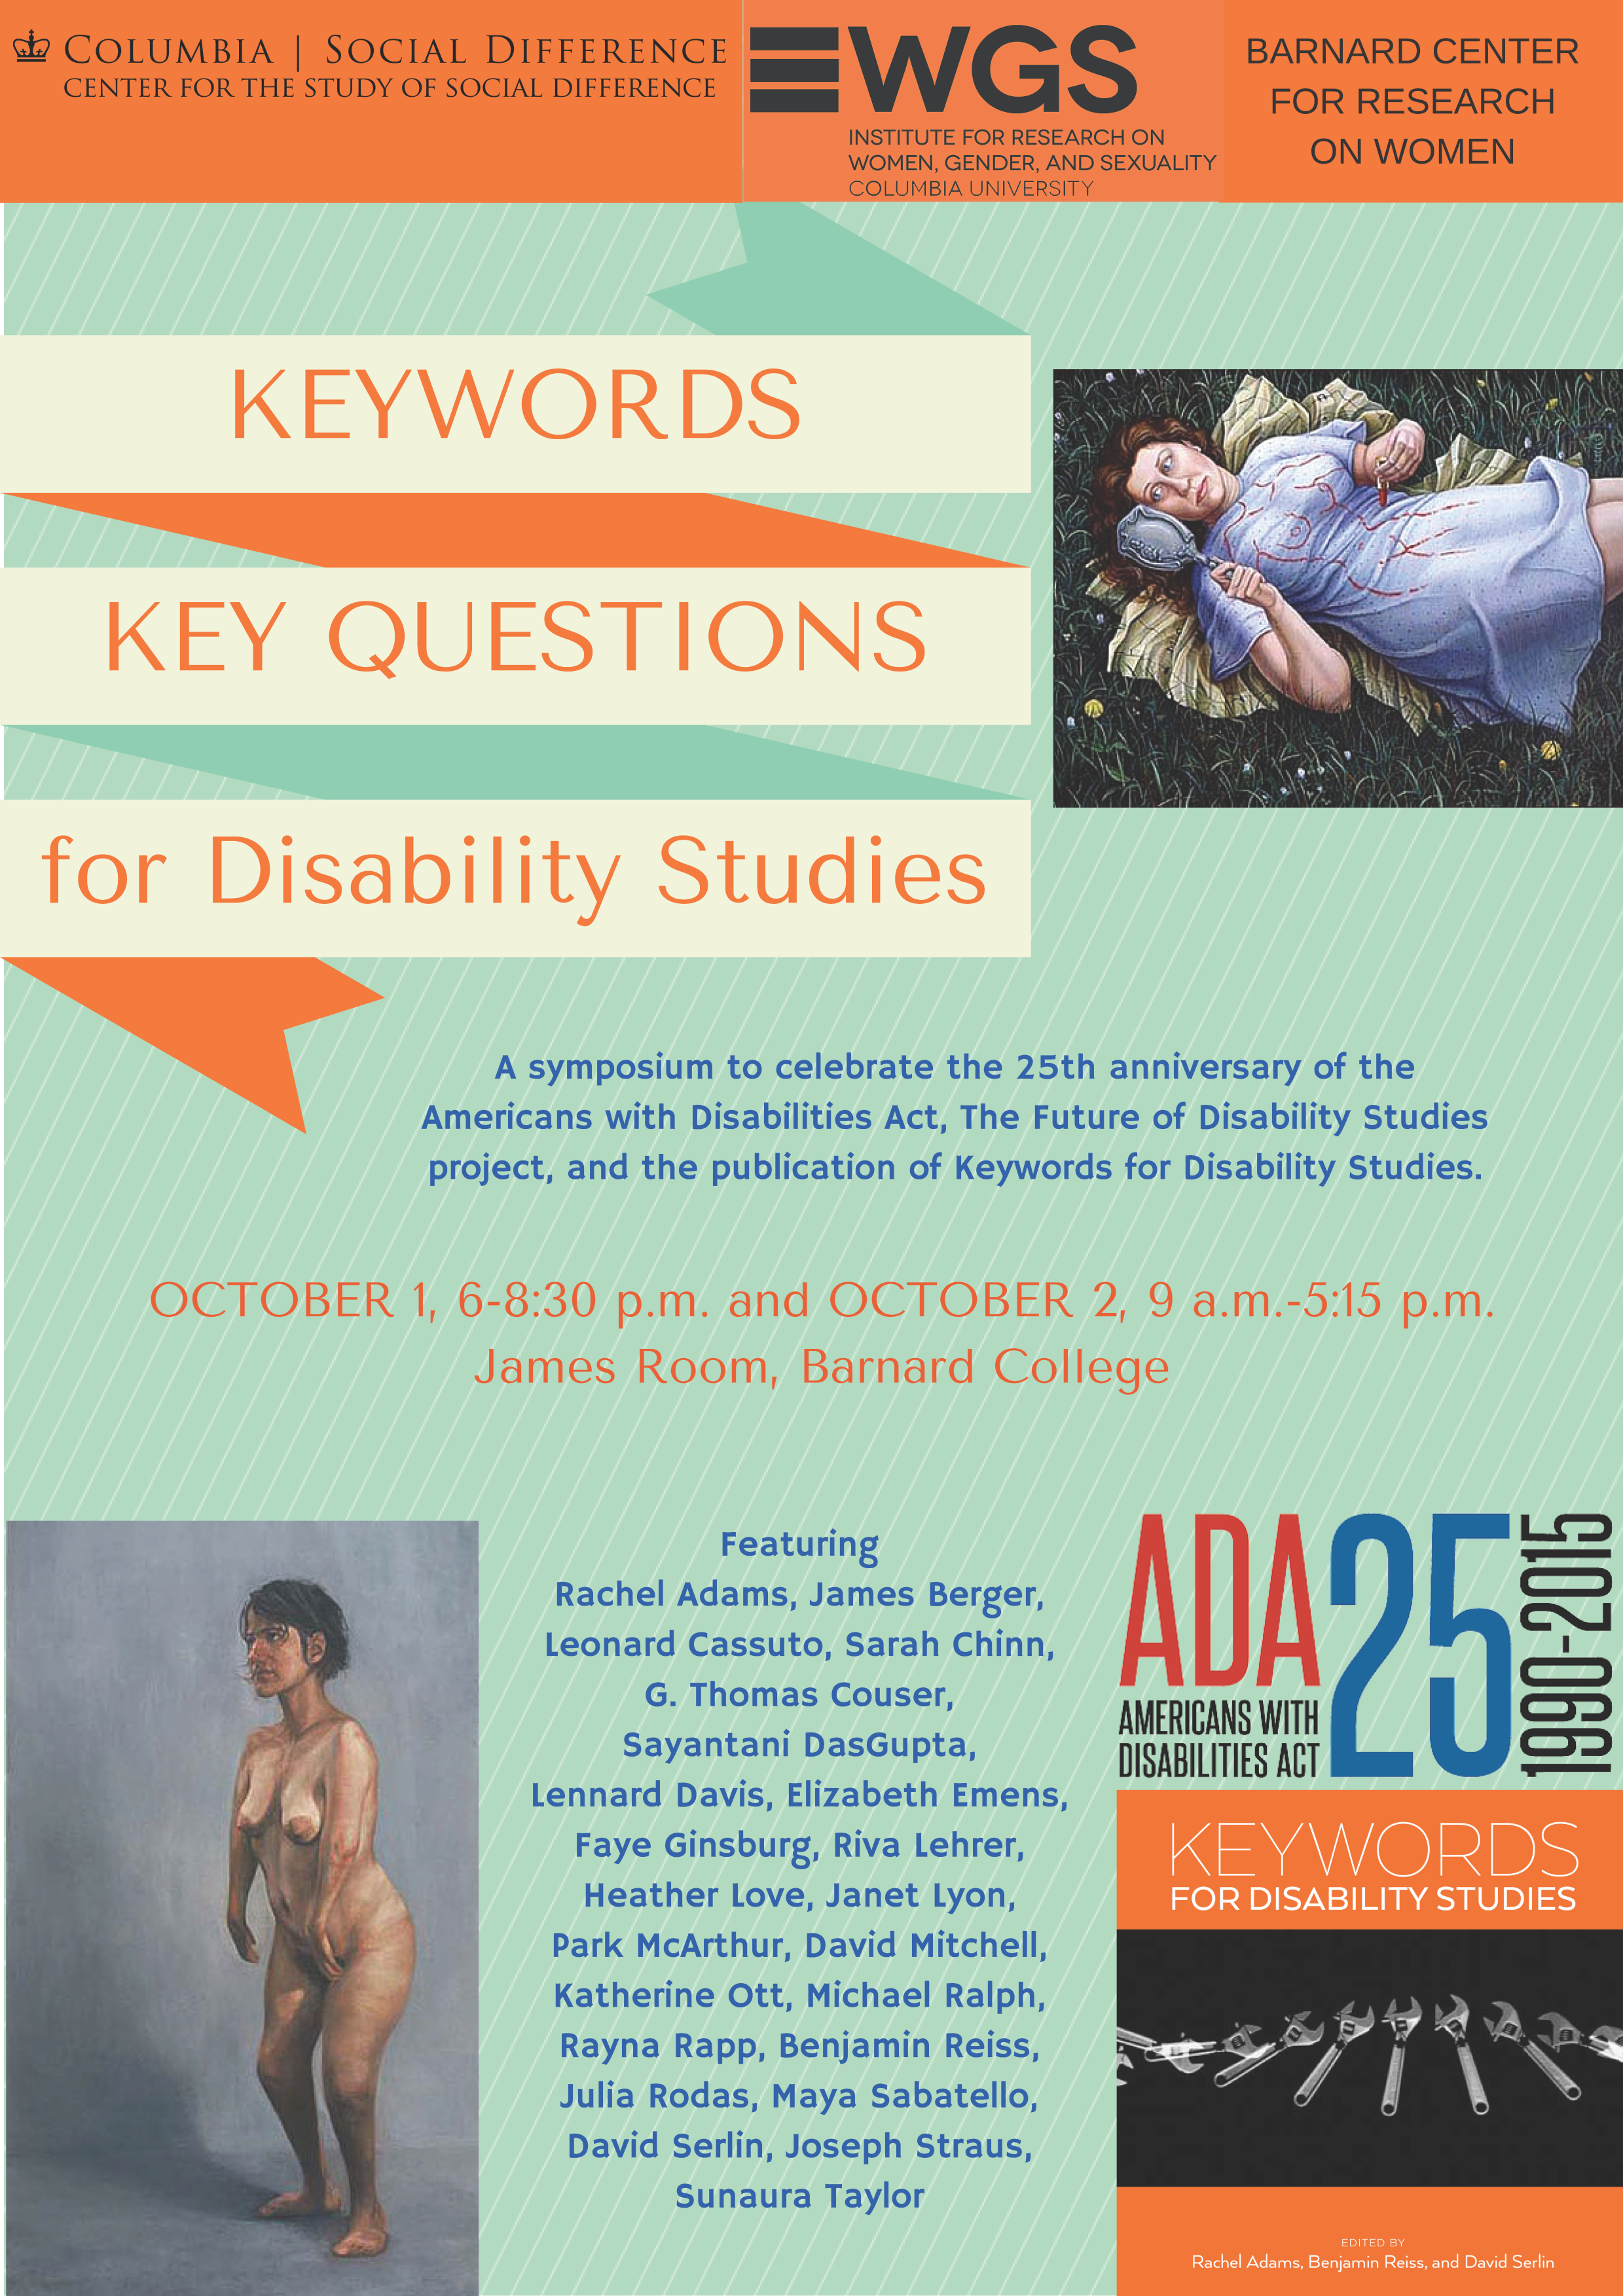 Disability and sexuality studies